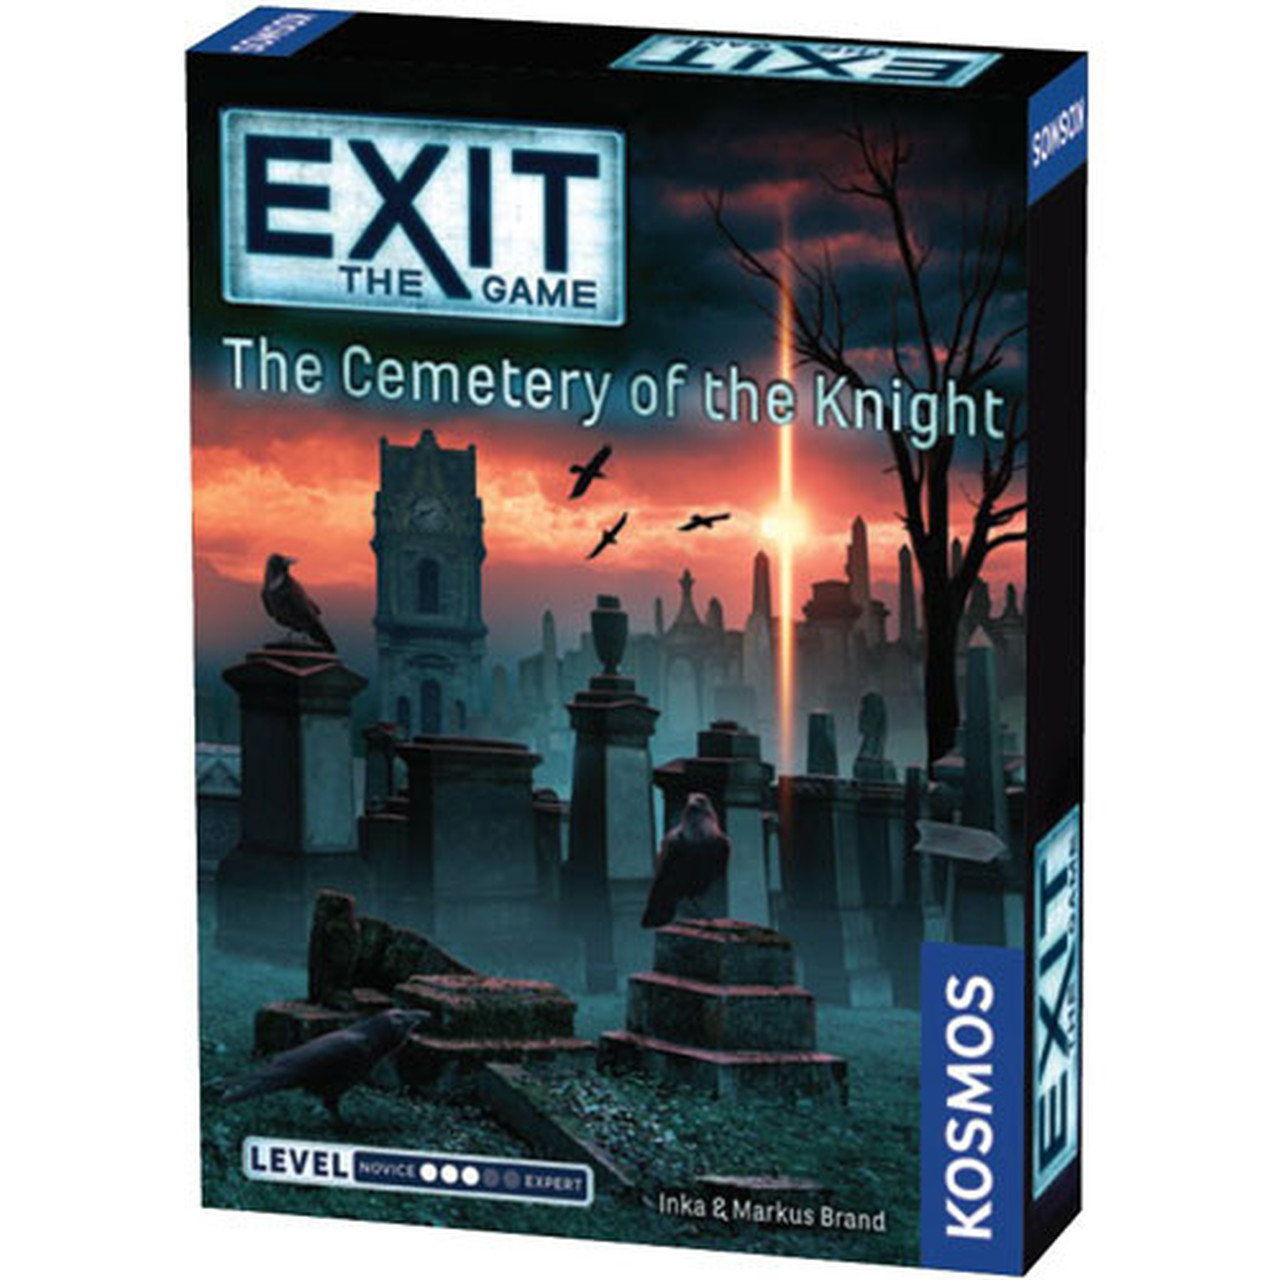 EXIT: The Cemetary of the Knight